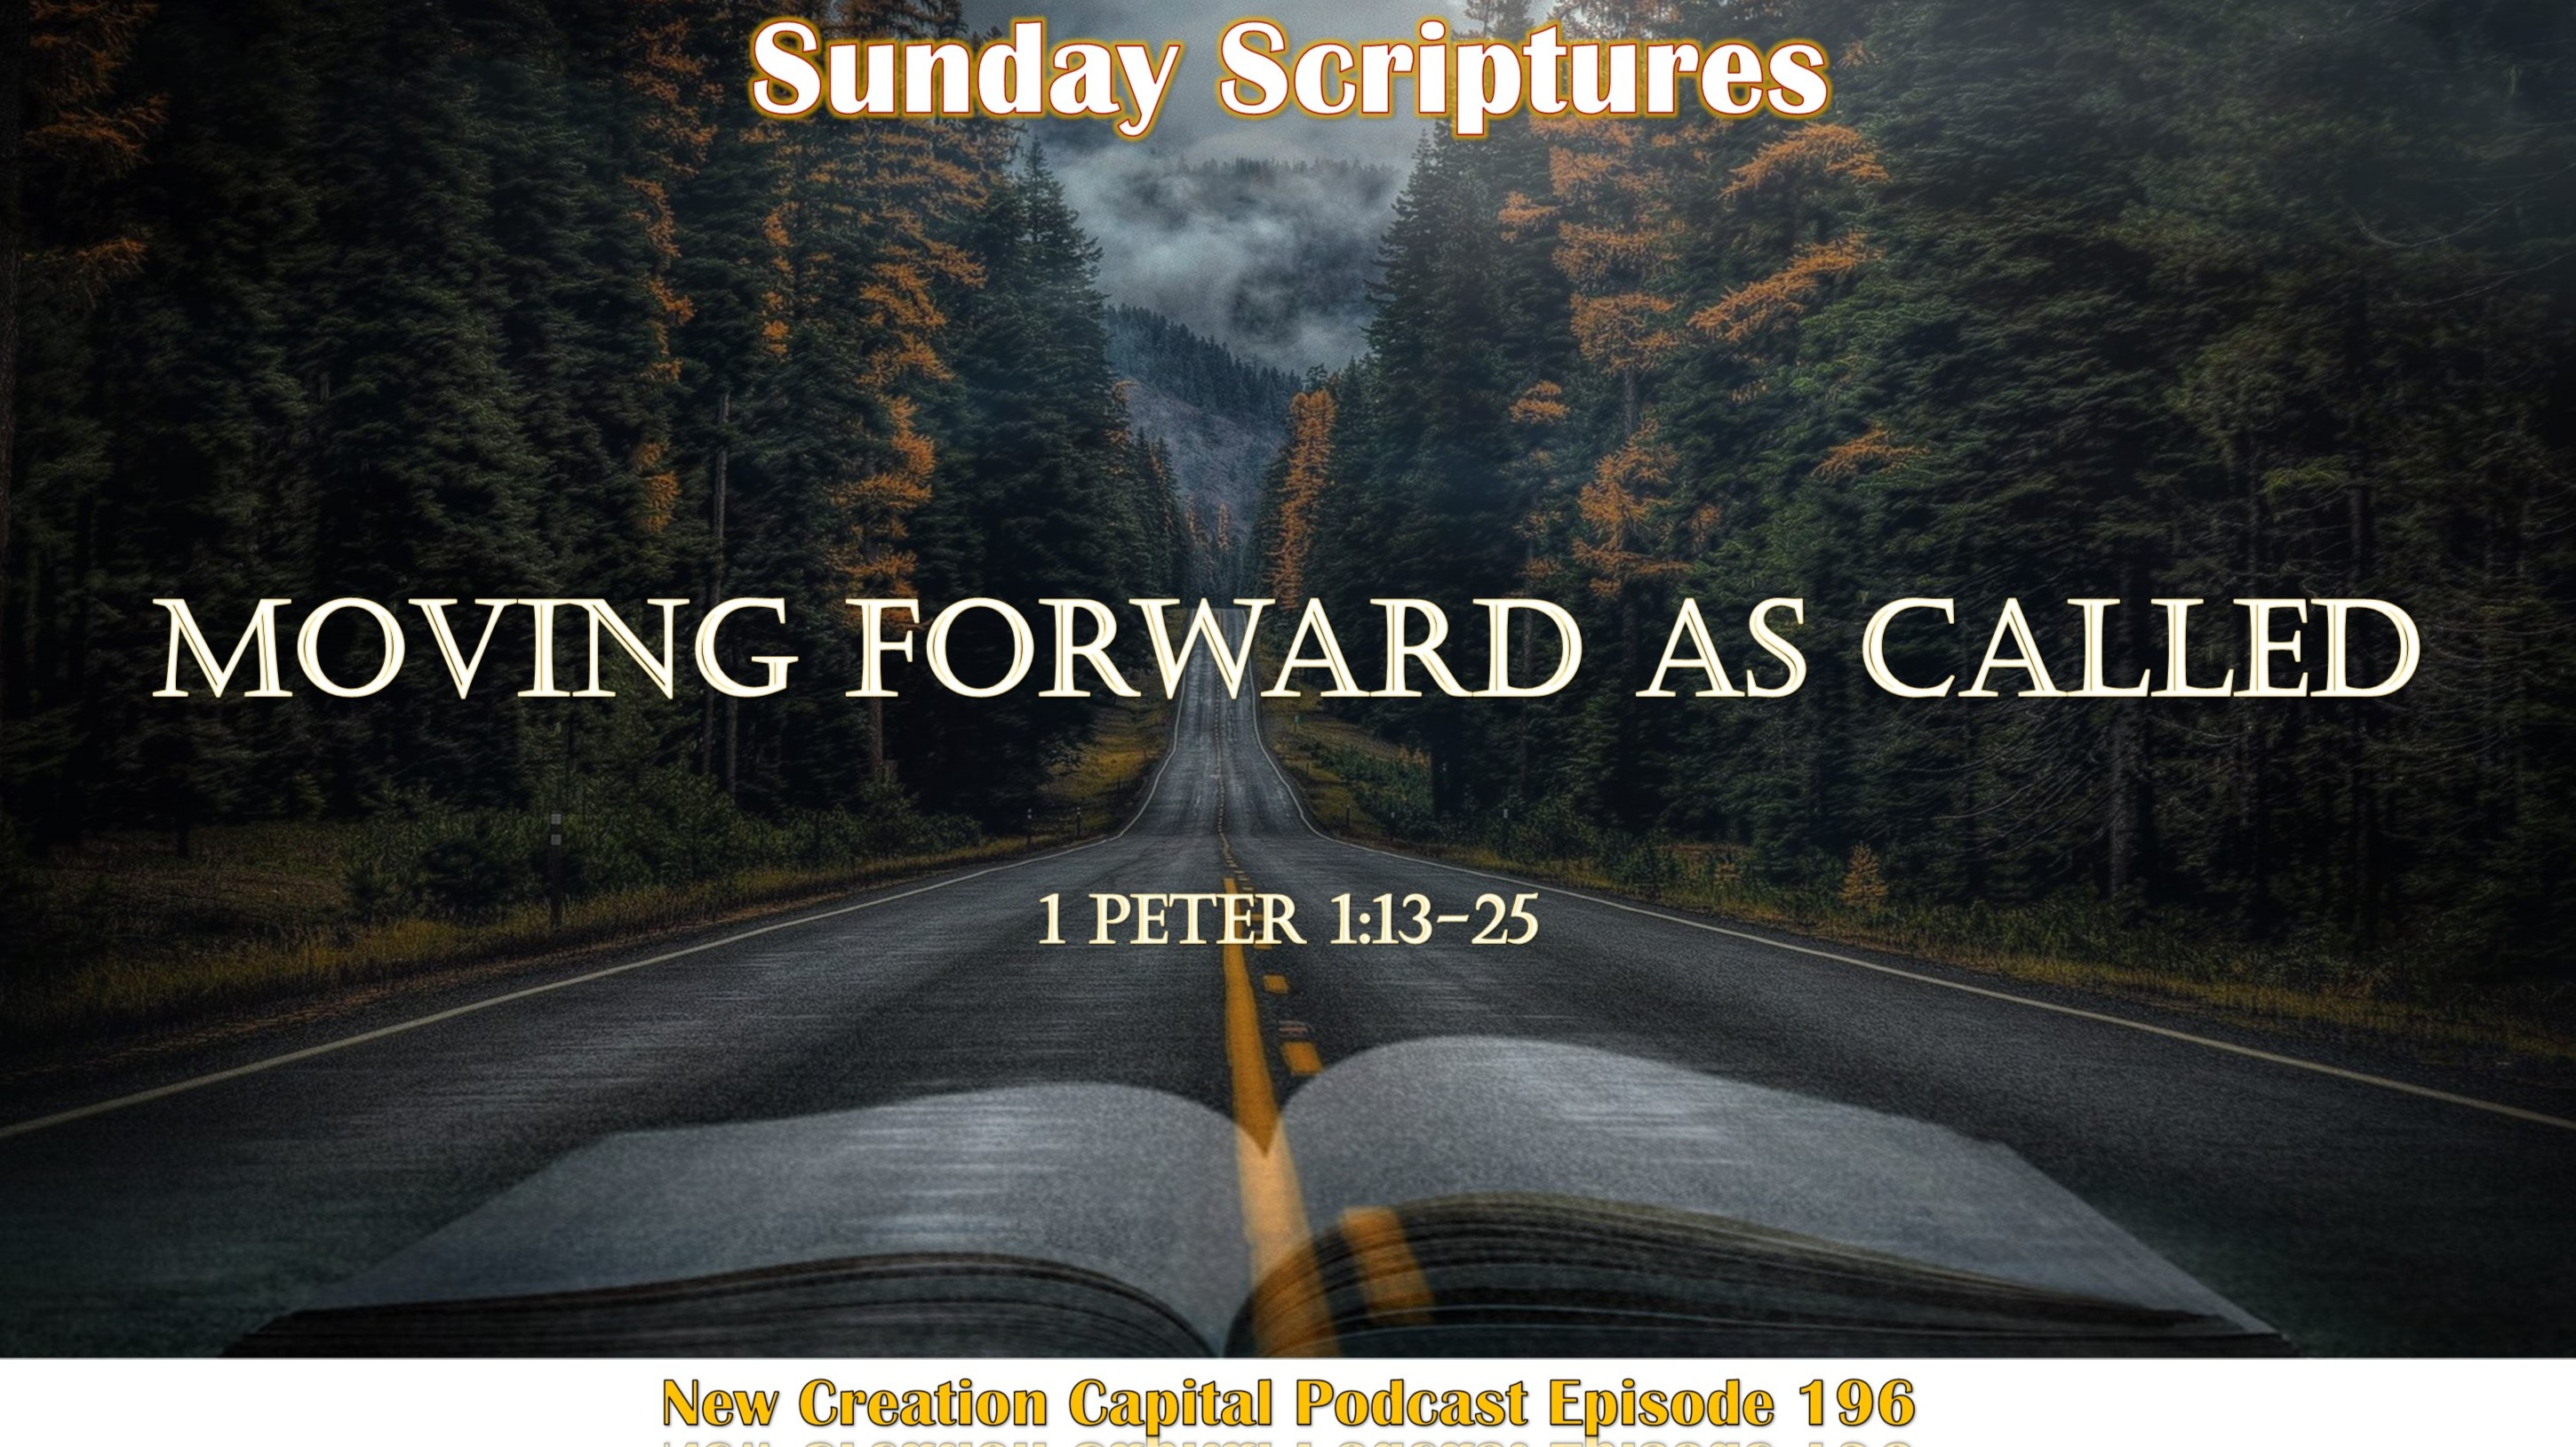 Episode 196 Moving Forward As Called Part 2 Sunday Scriptures